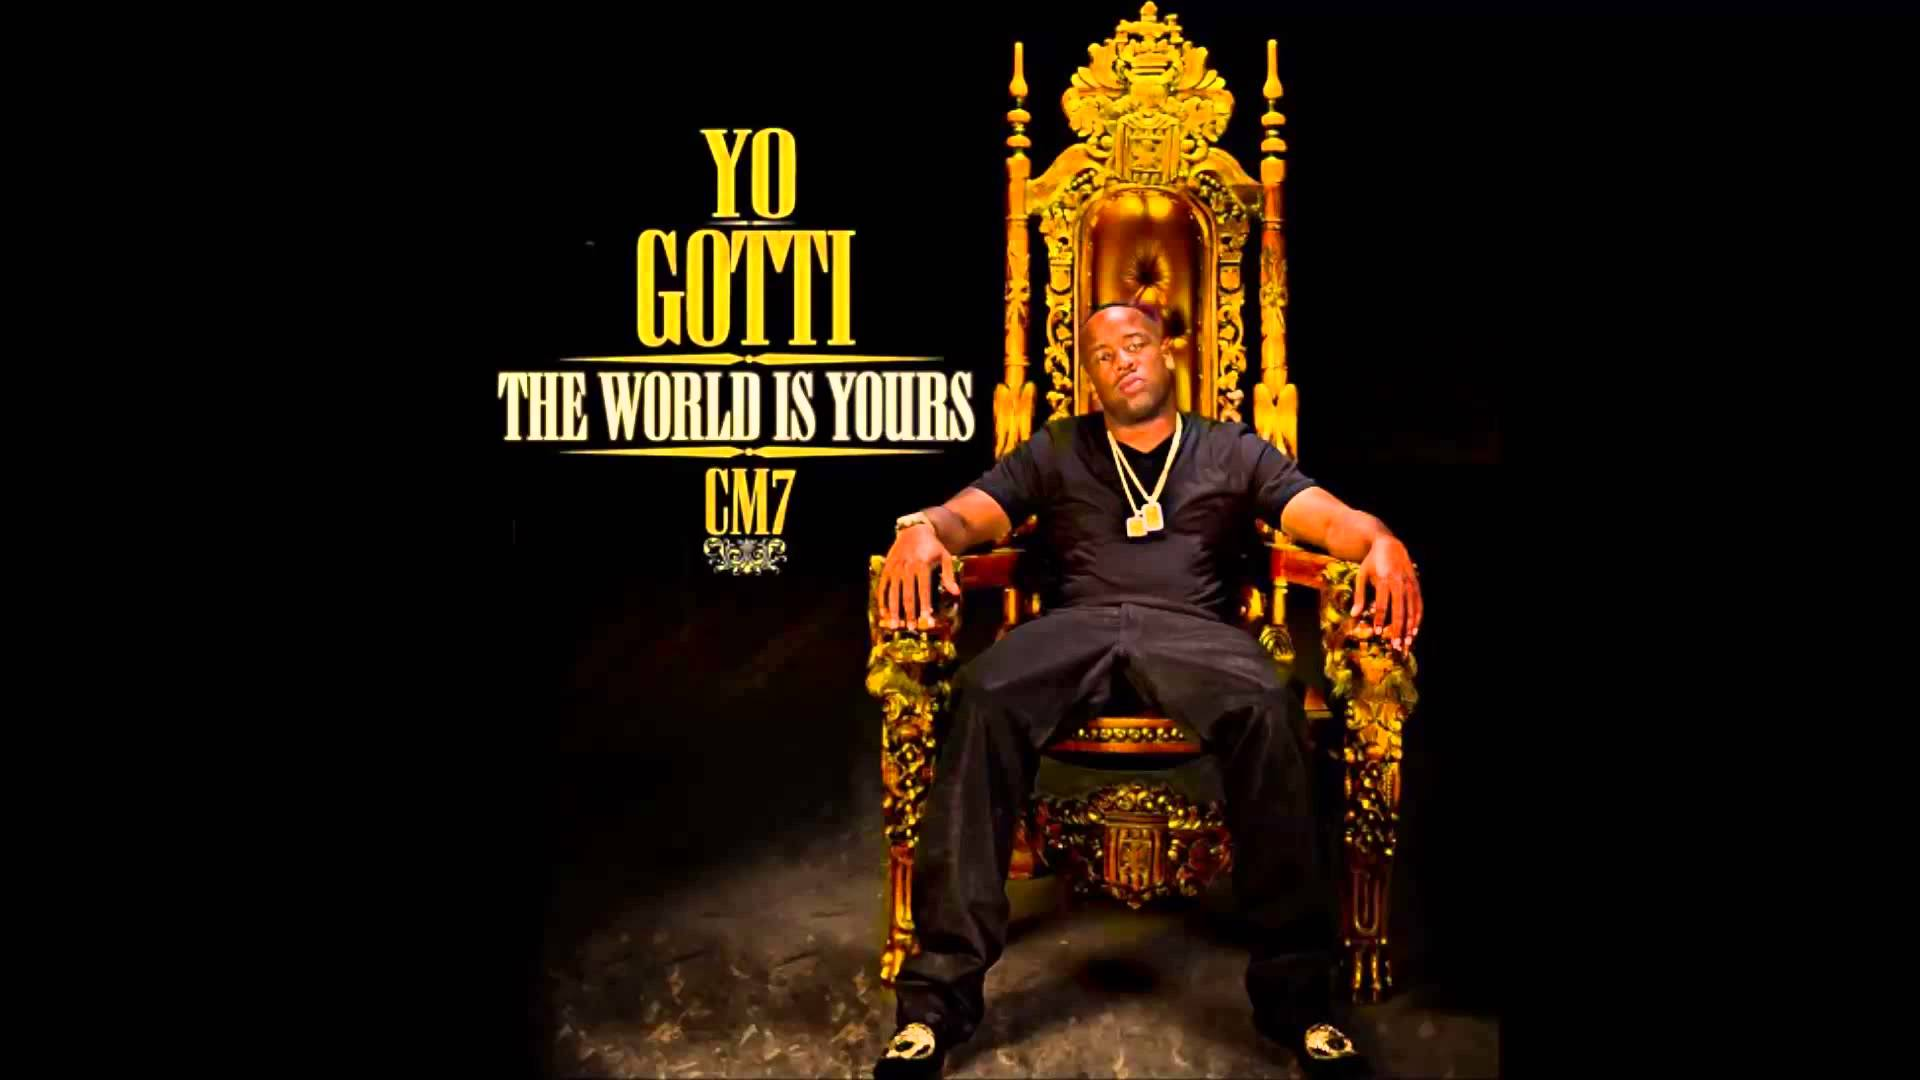 Yo Gotti Wallpaper